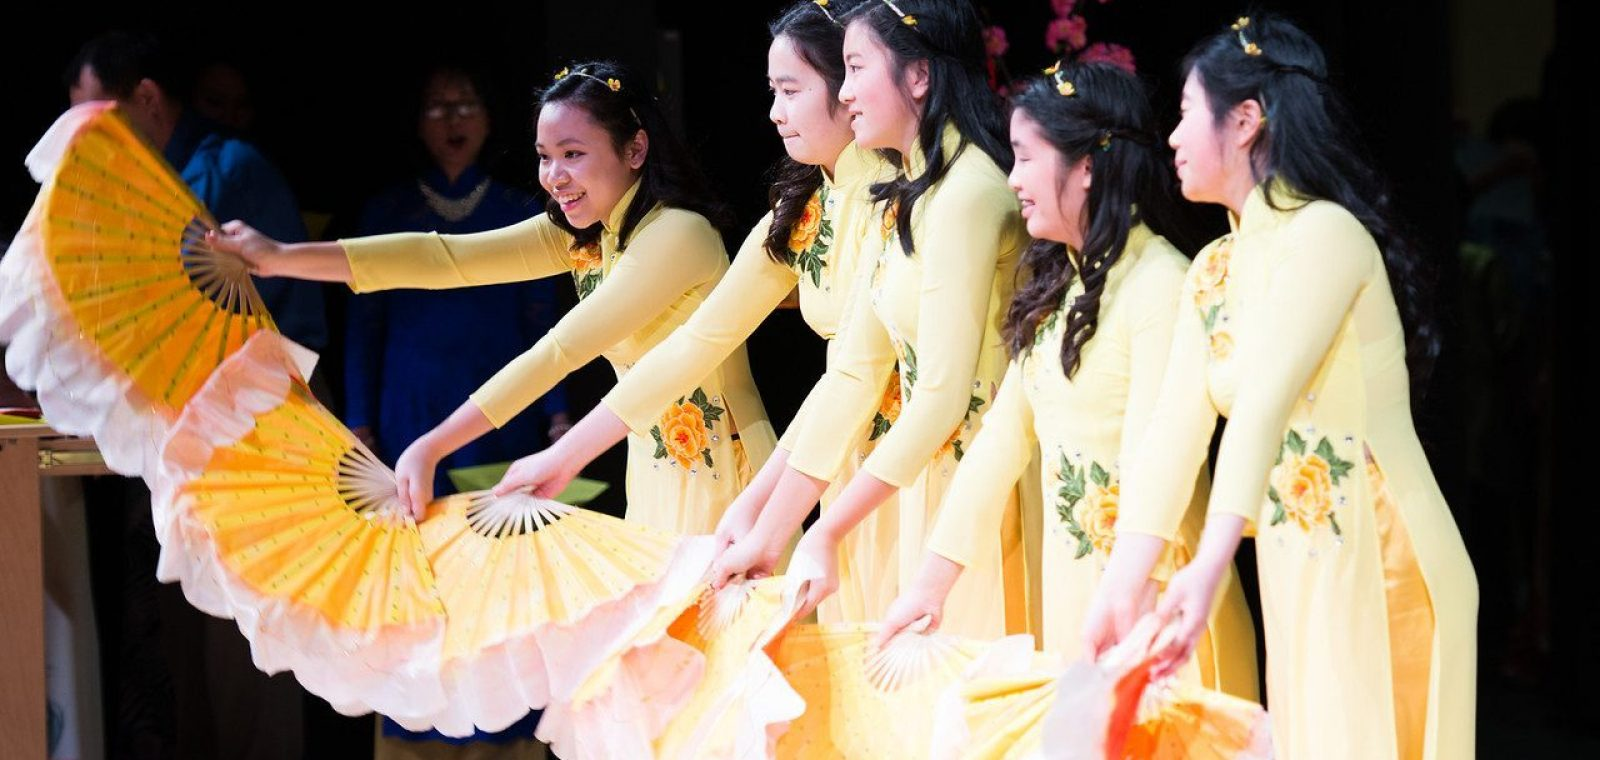 LHS_family_cultural4_front